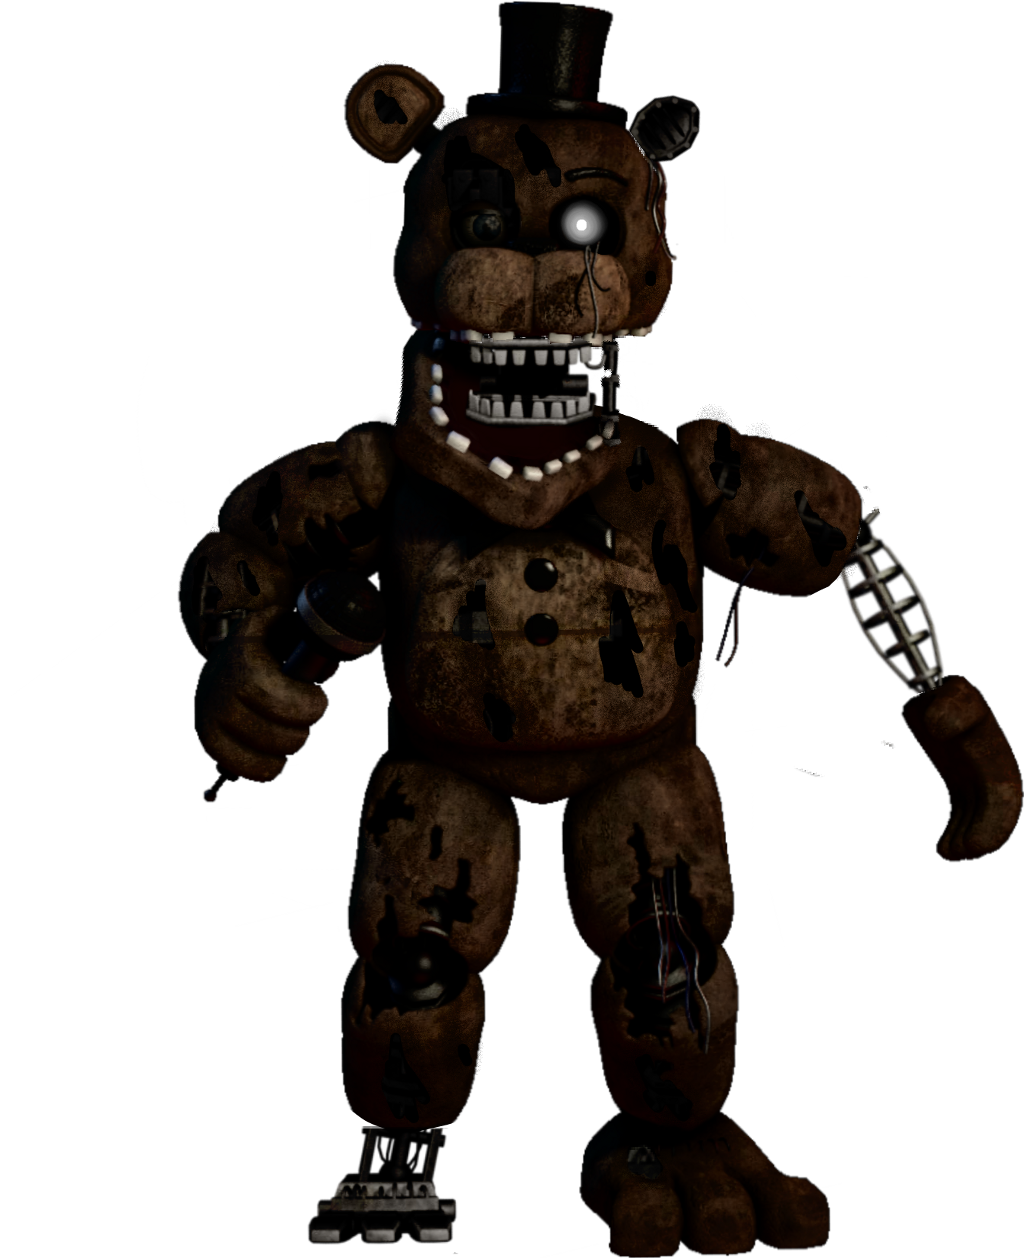 Broken Withered Freddy - Sticker by hello